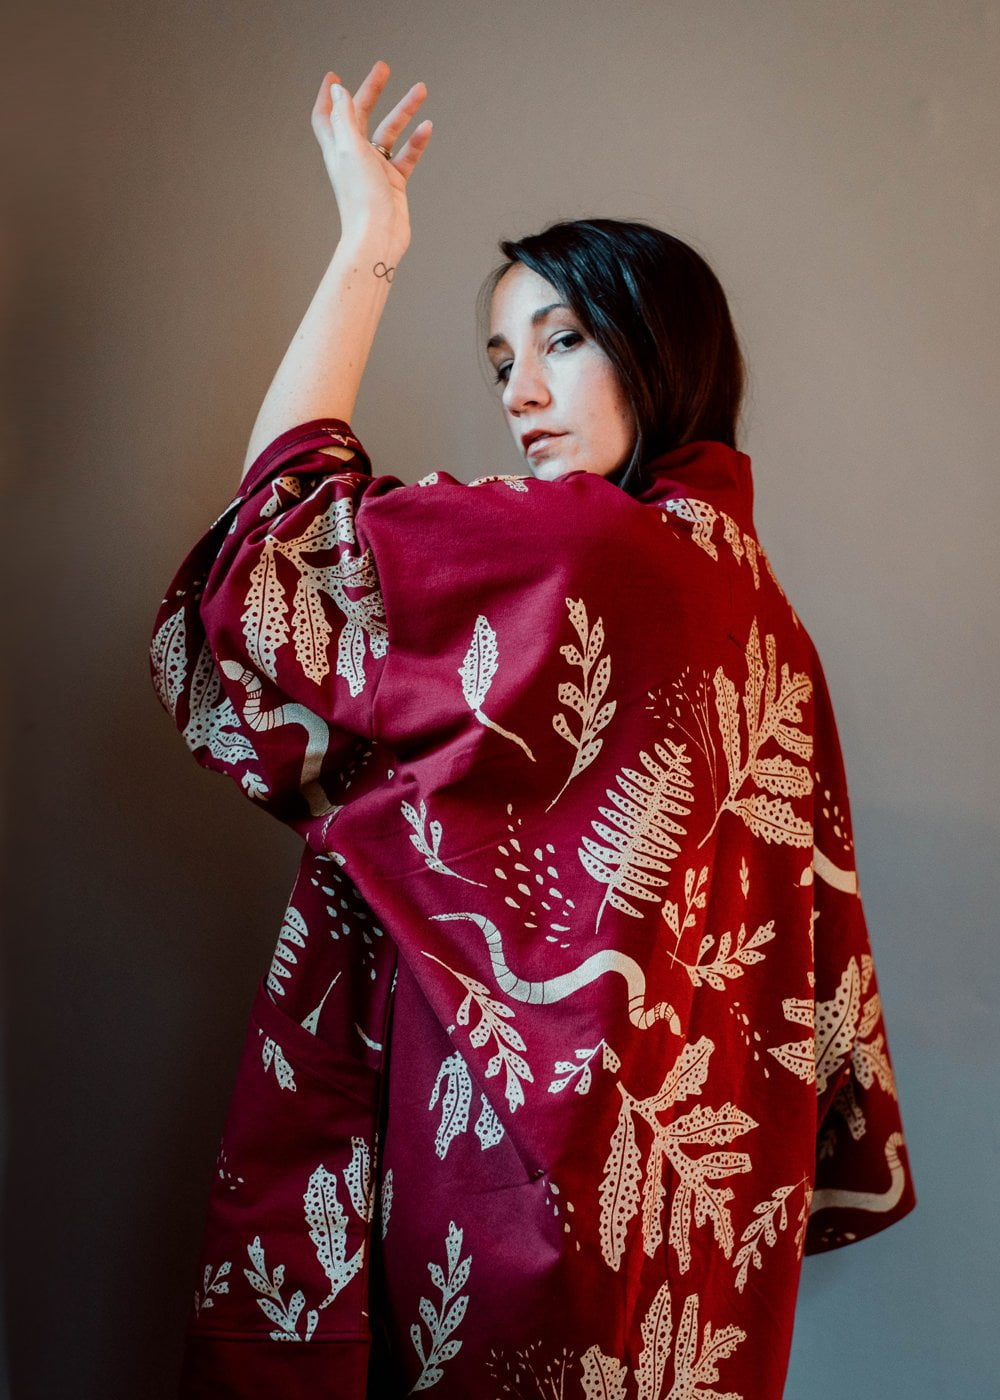 The Tapestry Tunic - Mulled Wine - Oversized Robe Cardigan in Metallic Gold